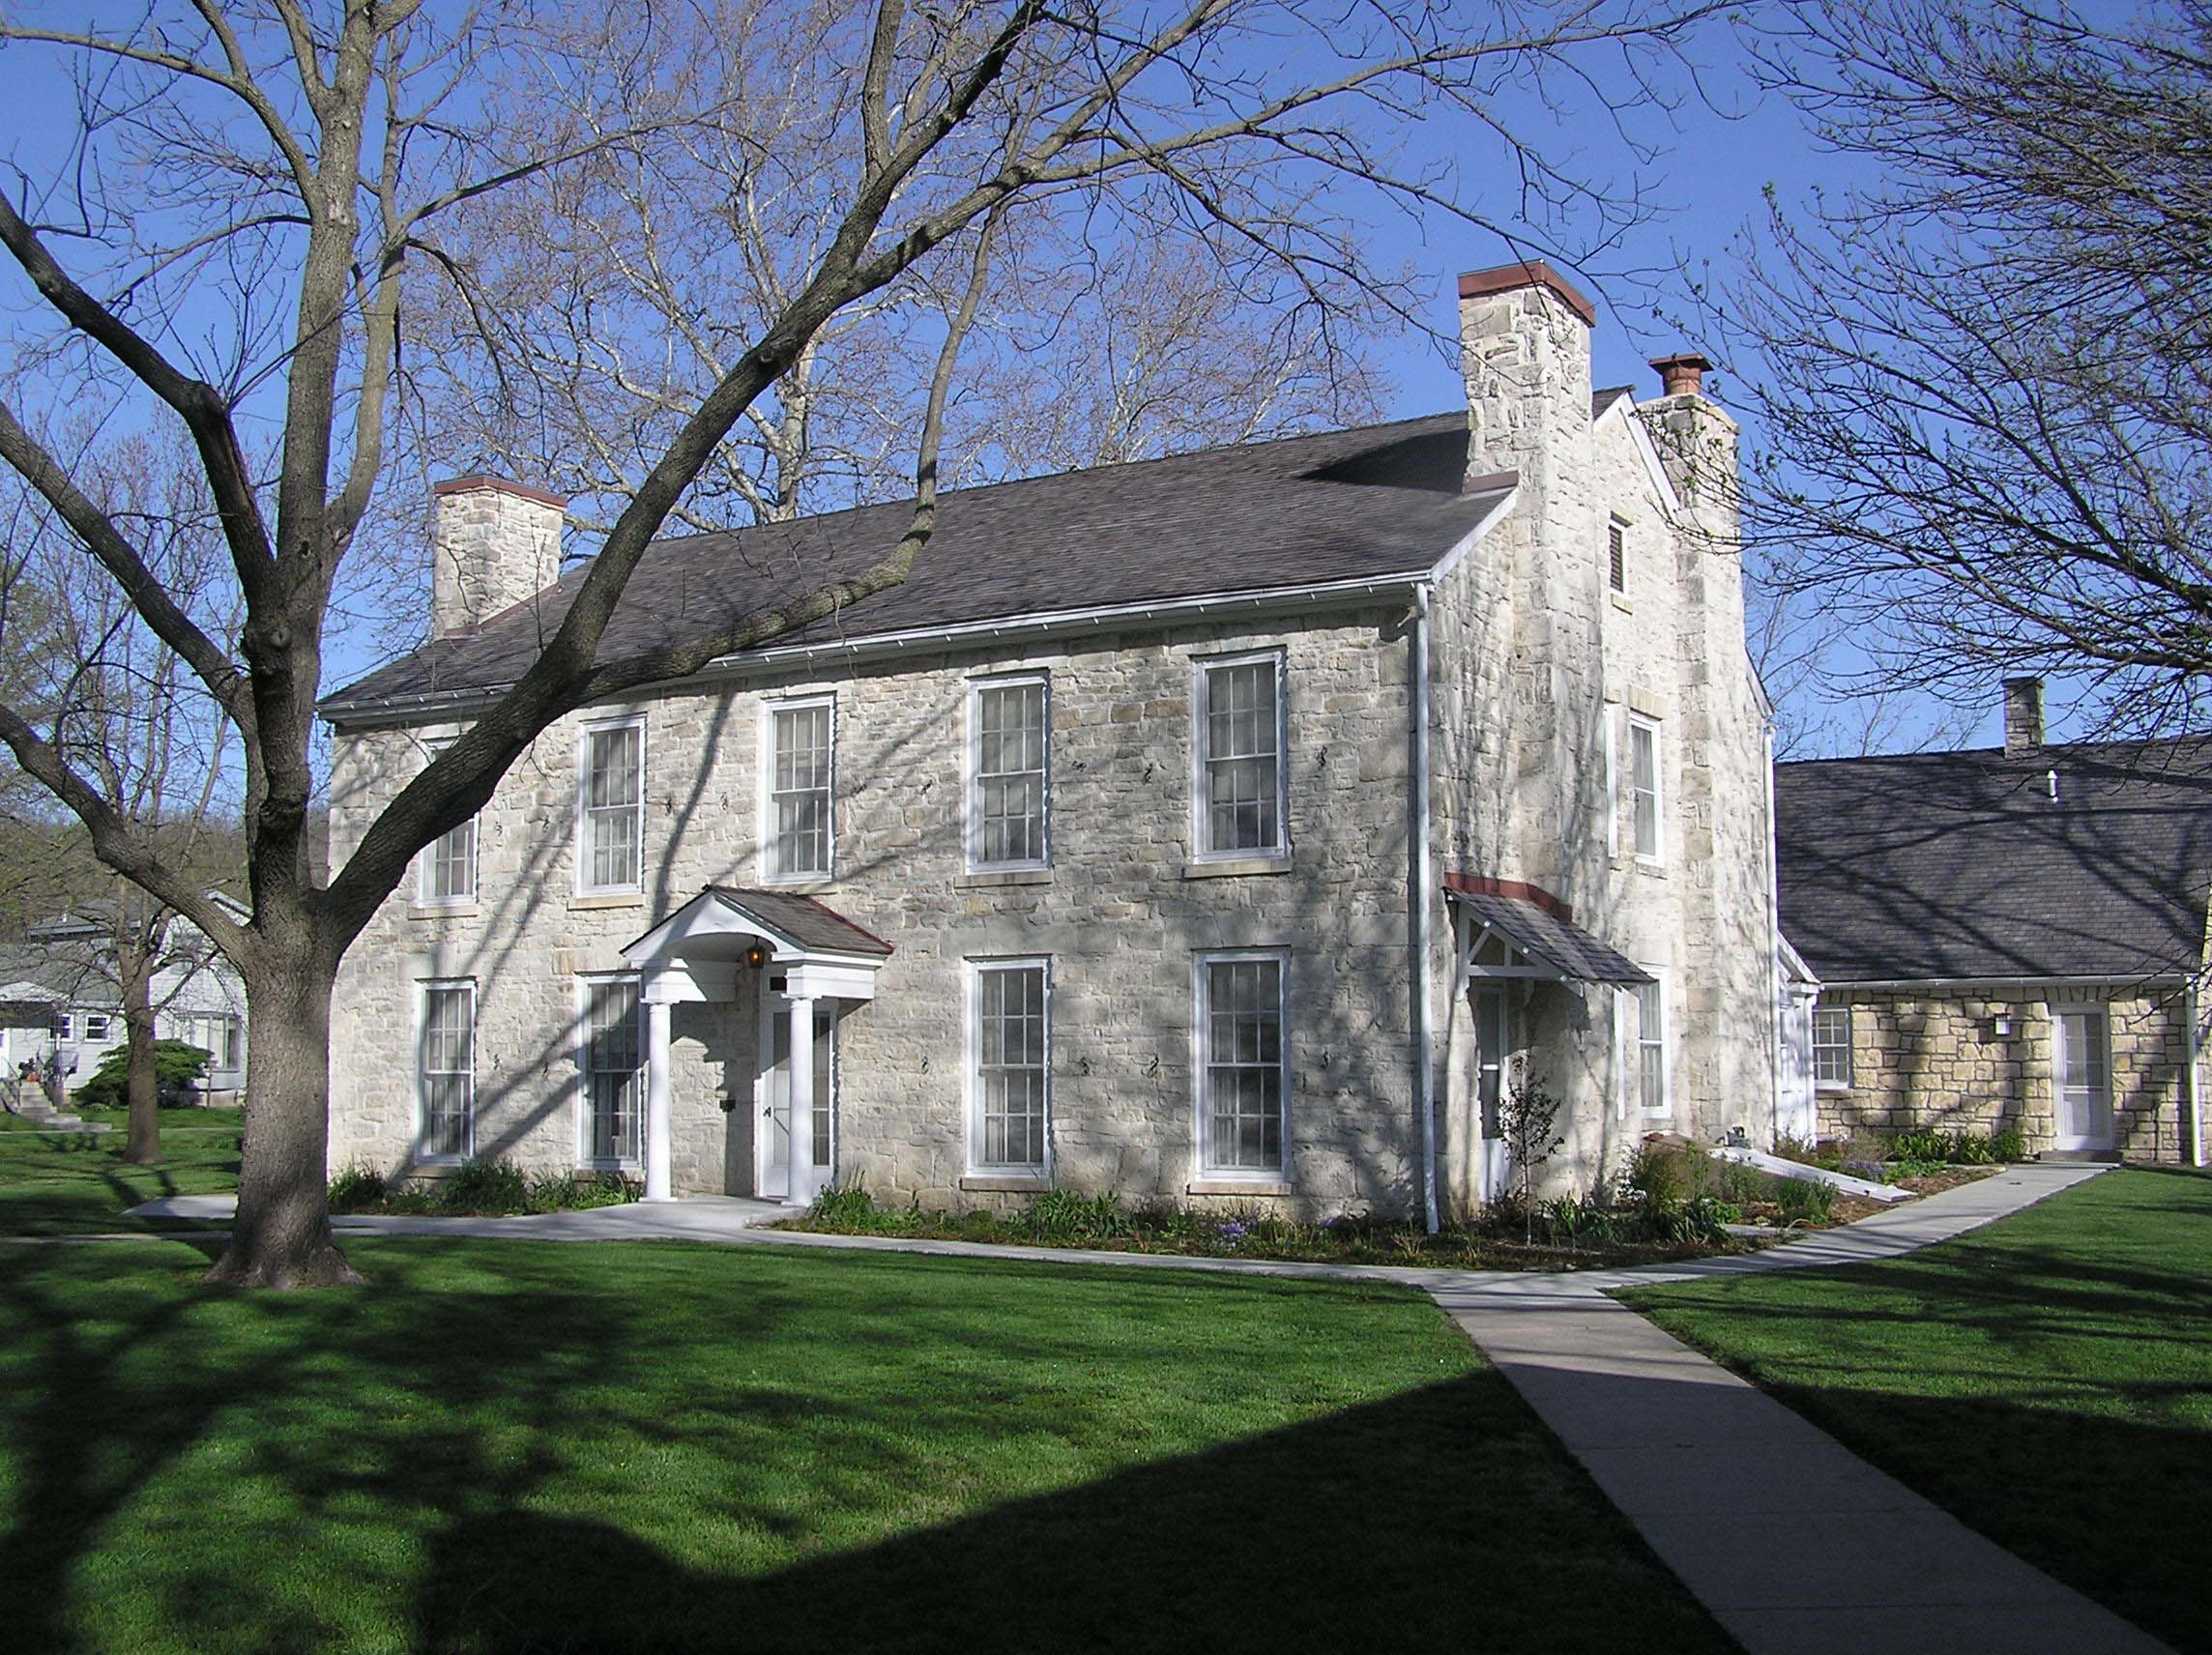 Kaw Indian Mission, Council Grove